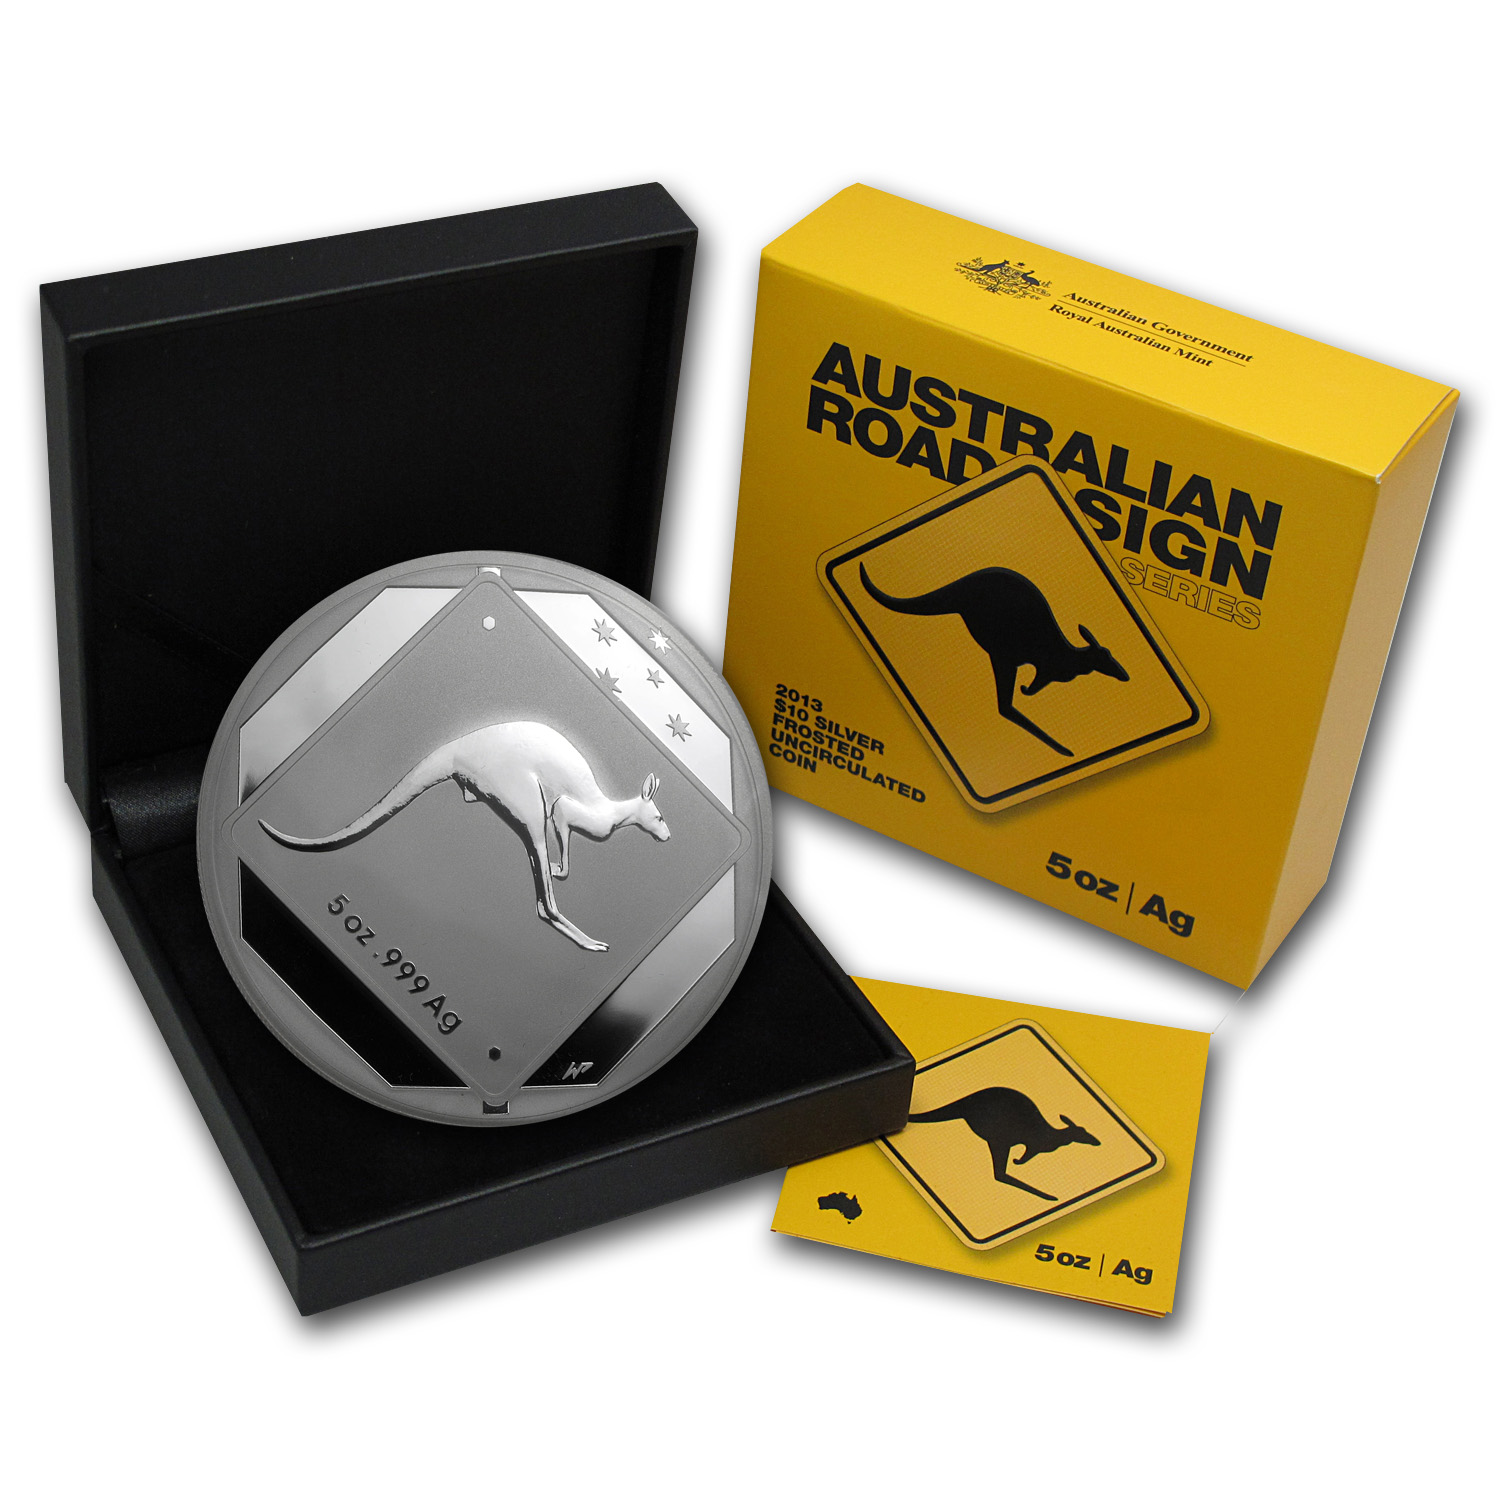 2013 Australia 5 oz Silver Kangaroo Road Sign